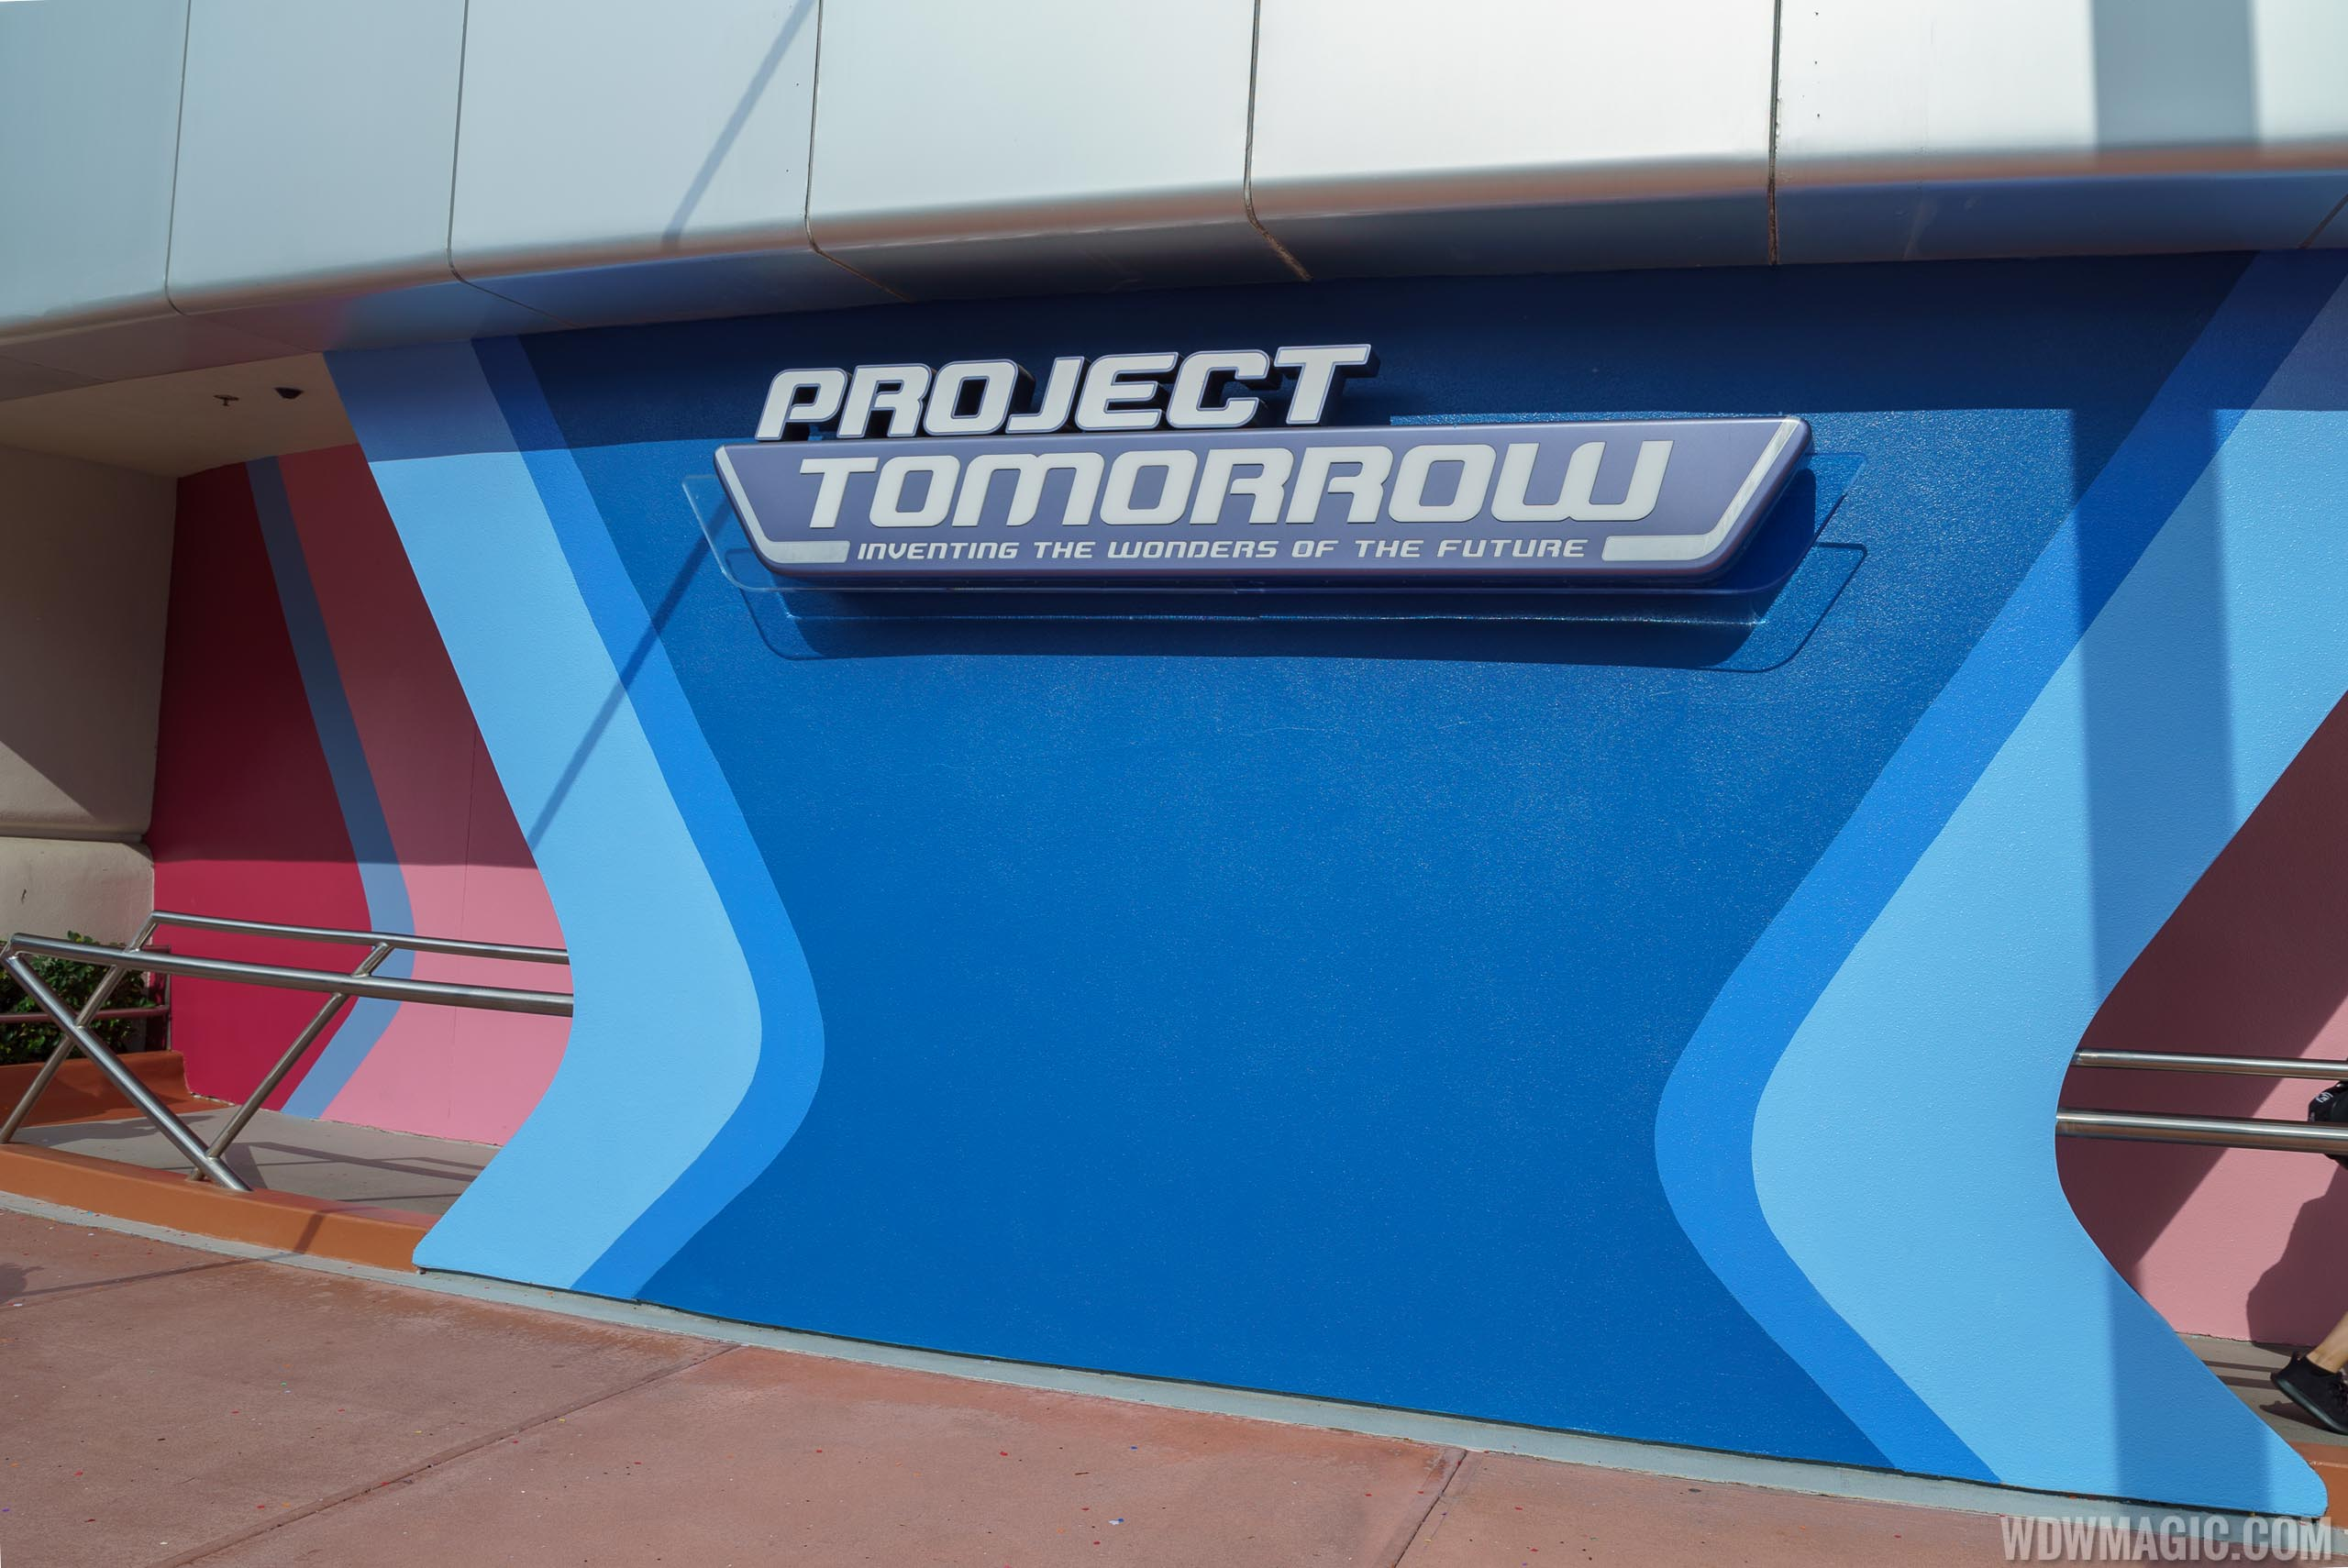 Siemens removed from the Project Tomorrow sign